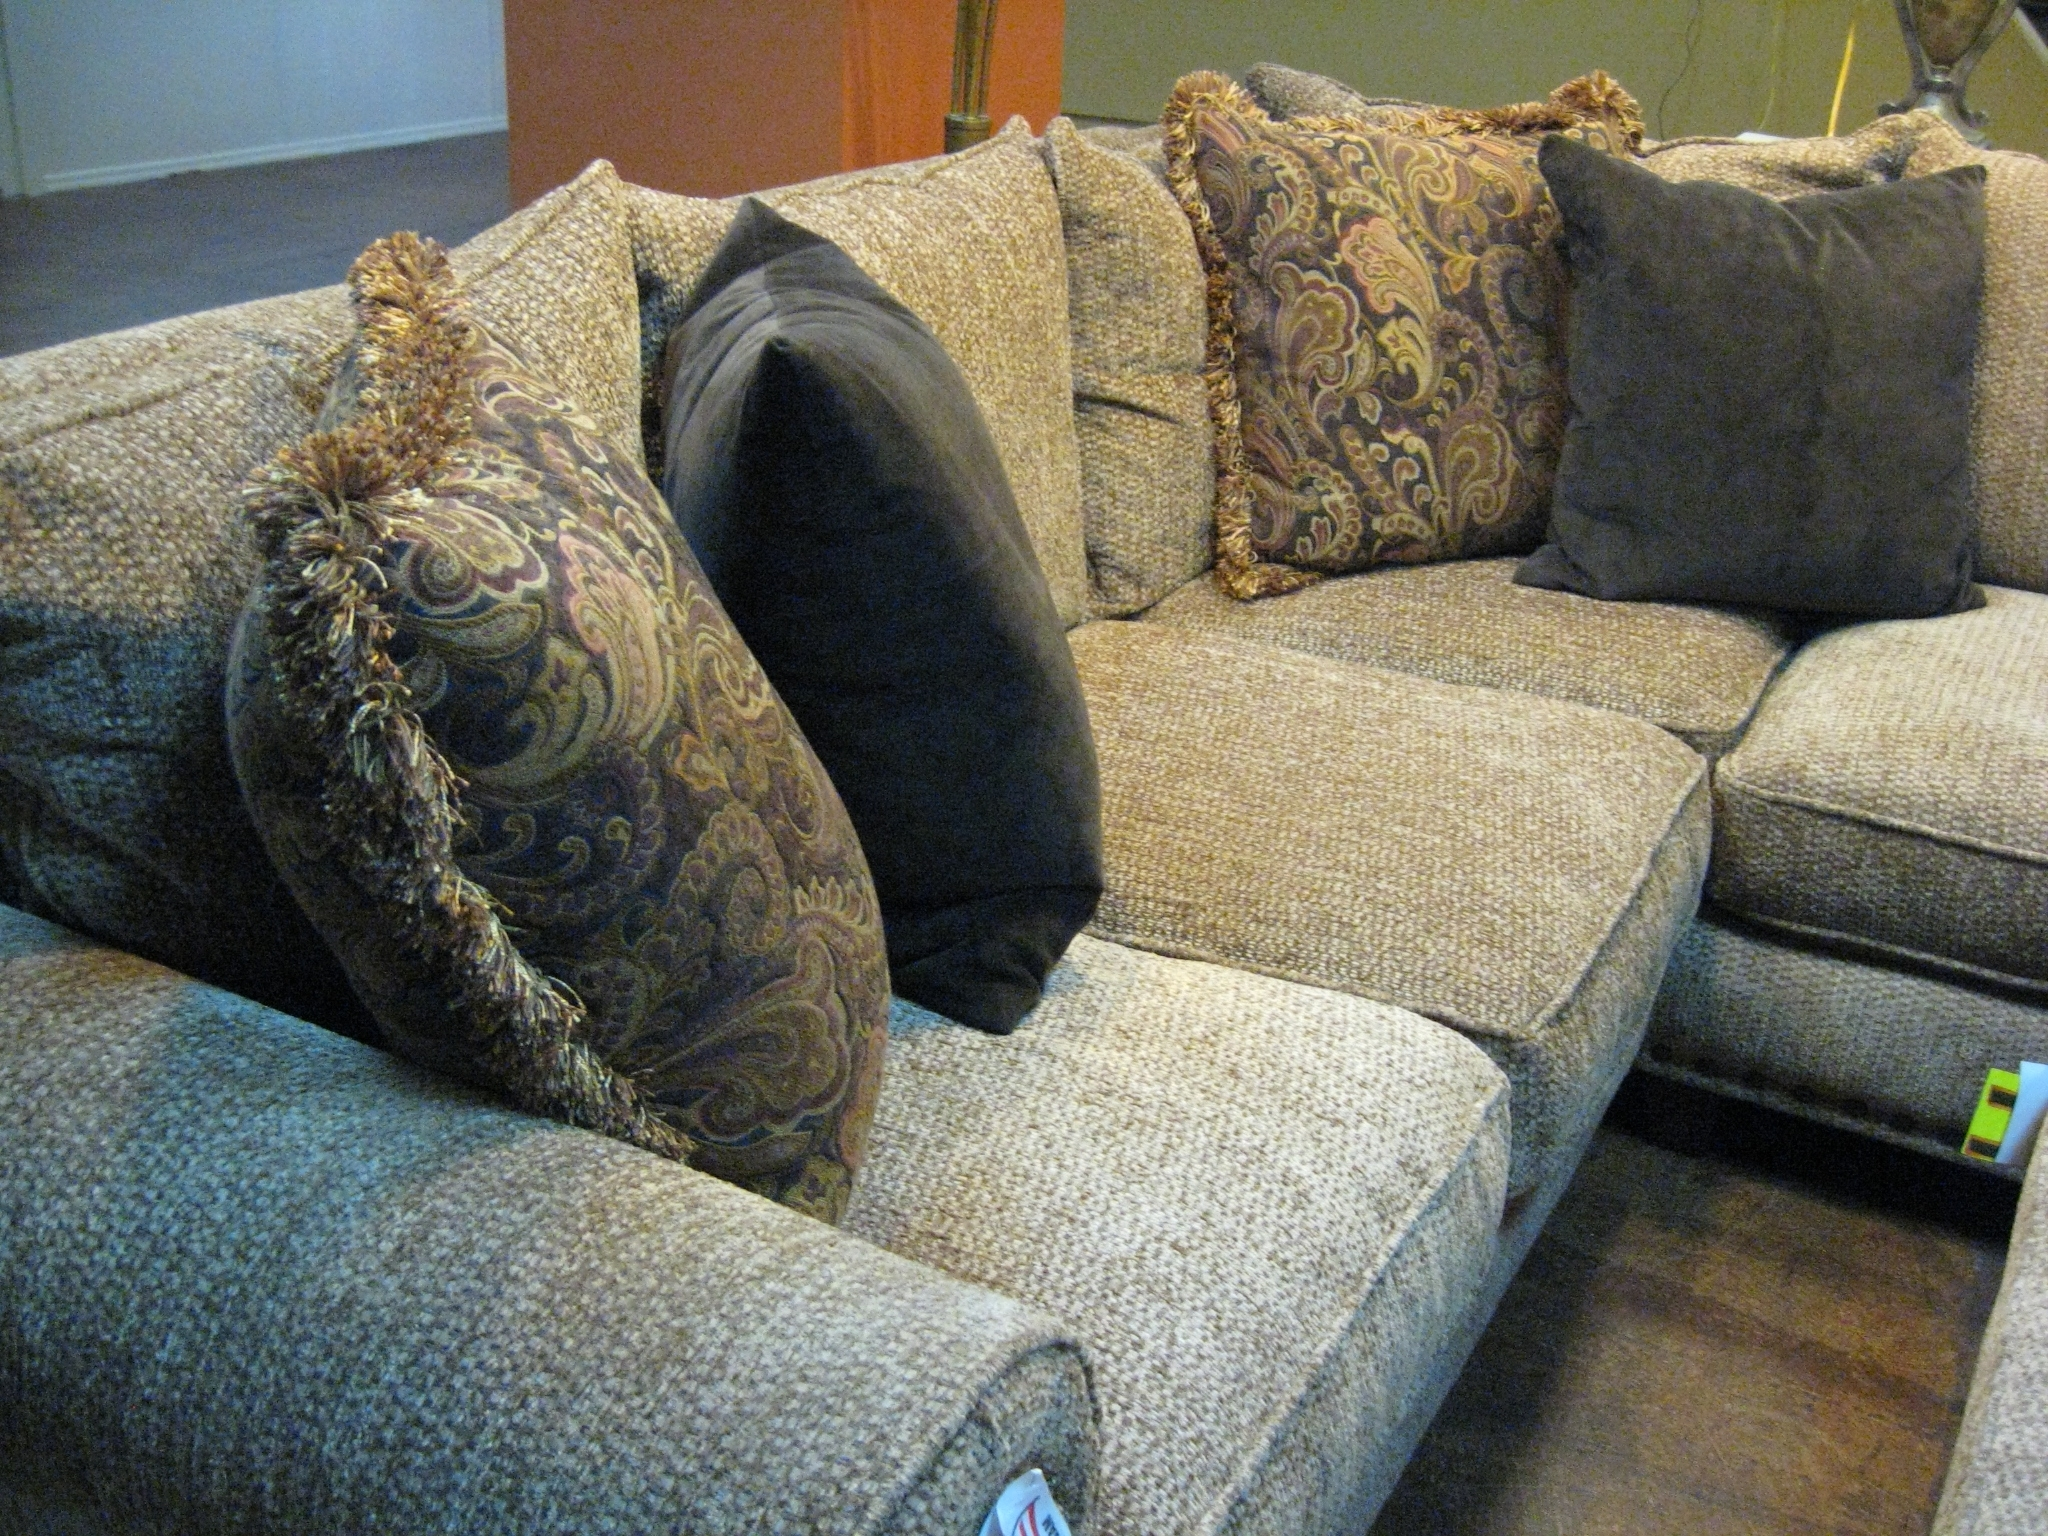 Phoenix Arizona Sectional Sofas In Most Popular Robert Michael Sectional Sofa Phoenix Arizona Discount Outlet (View 8 of 15)